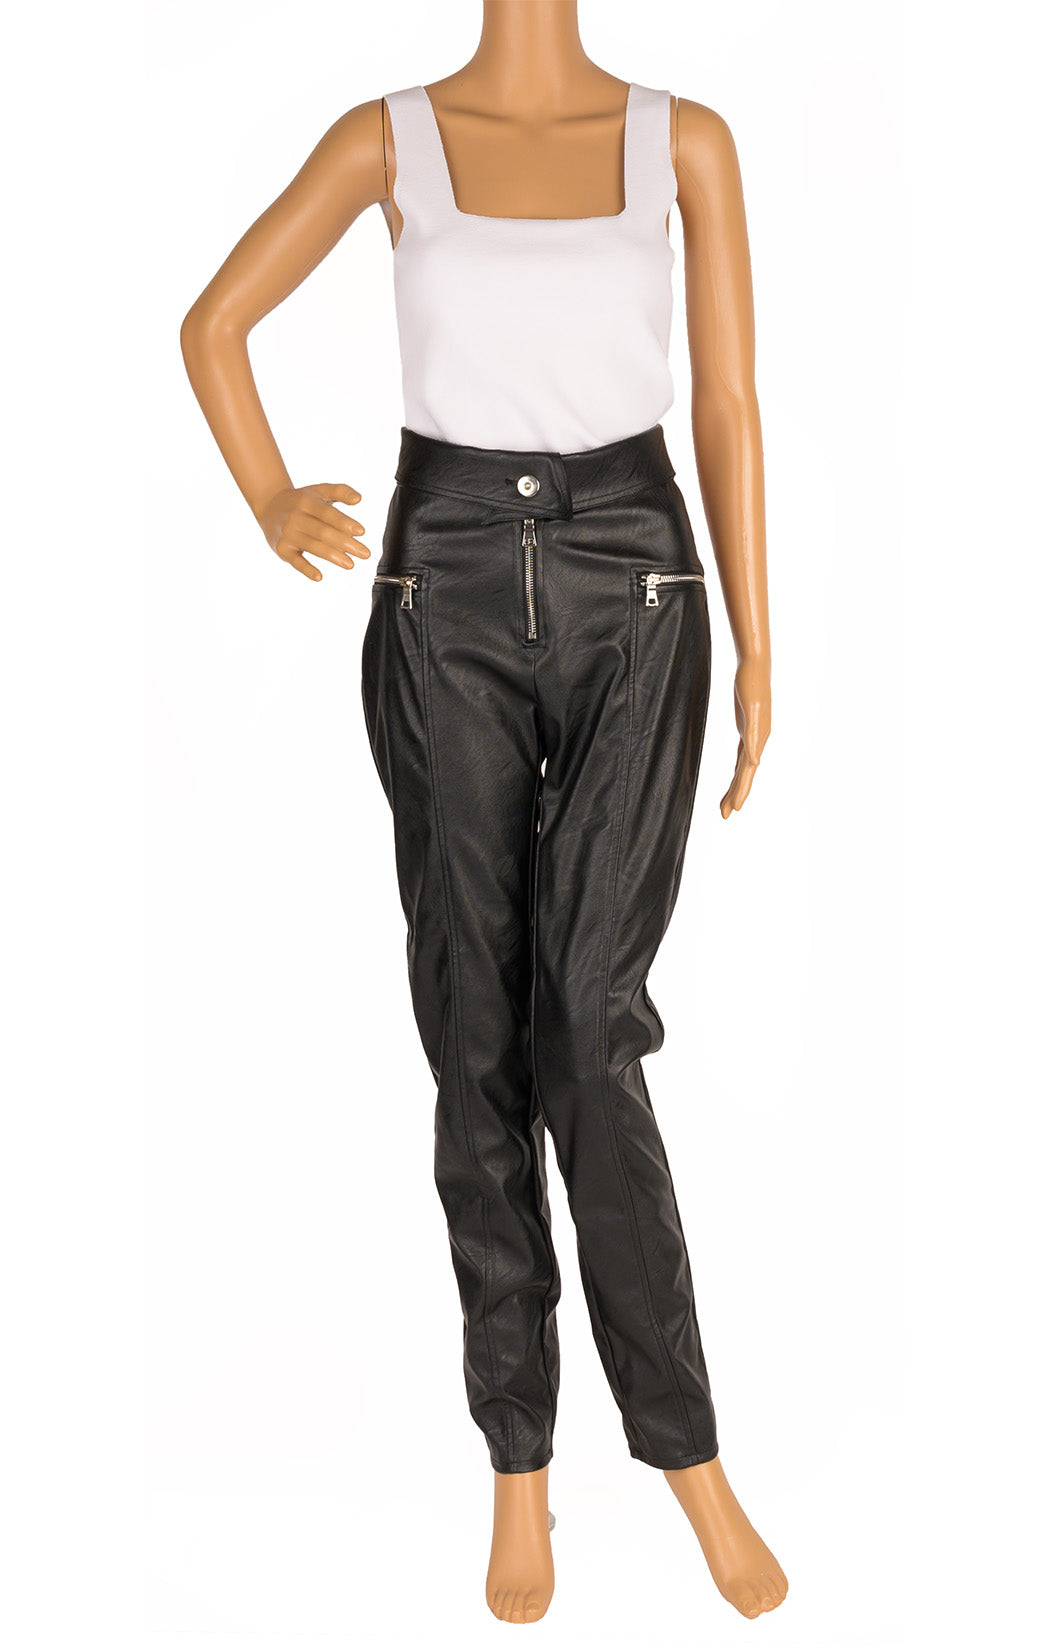 Front view of TIGER MIST Pants Size: Medium